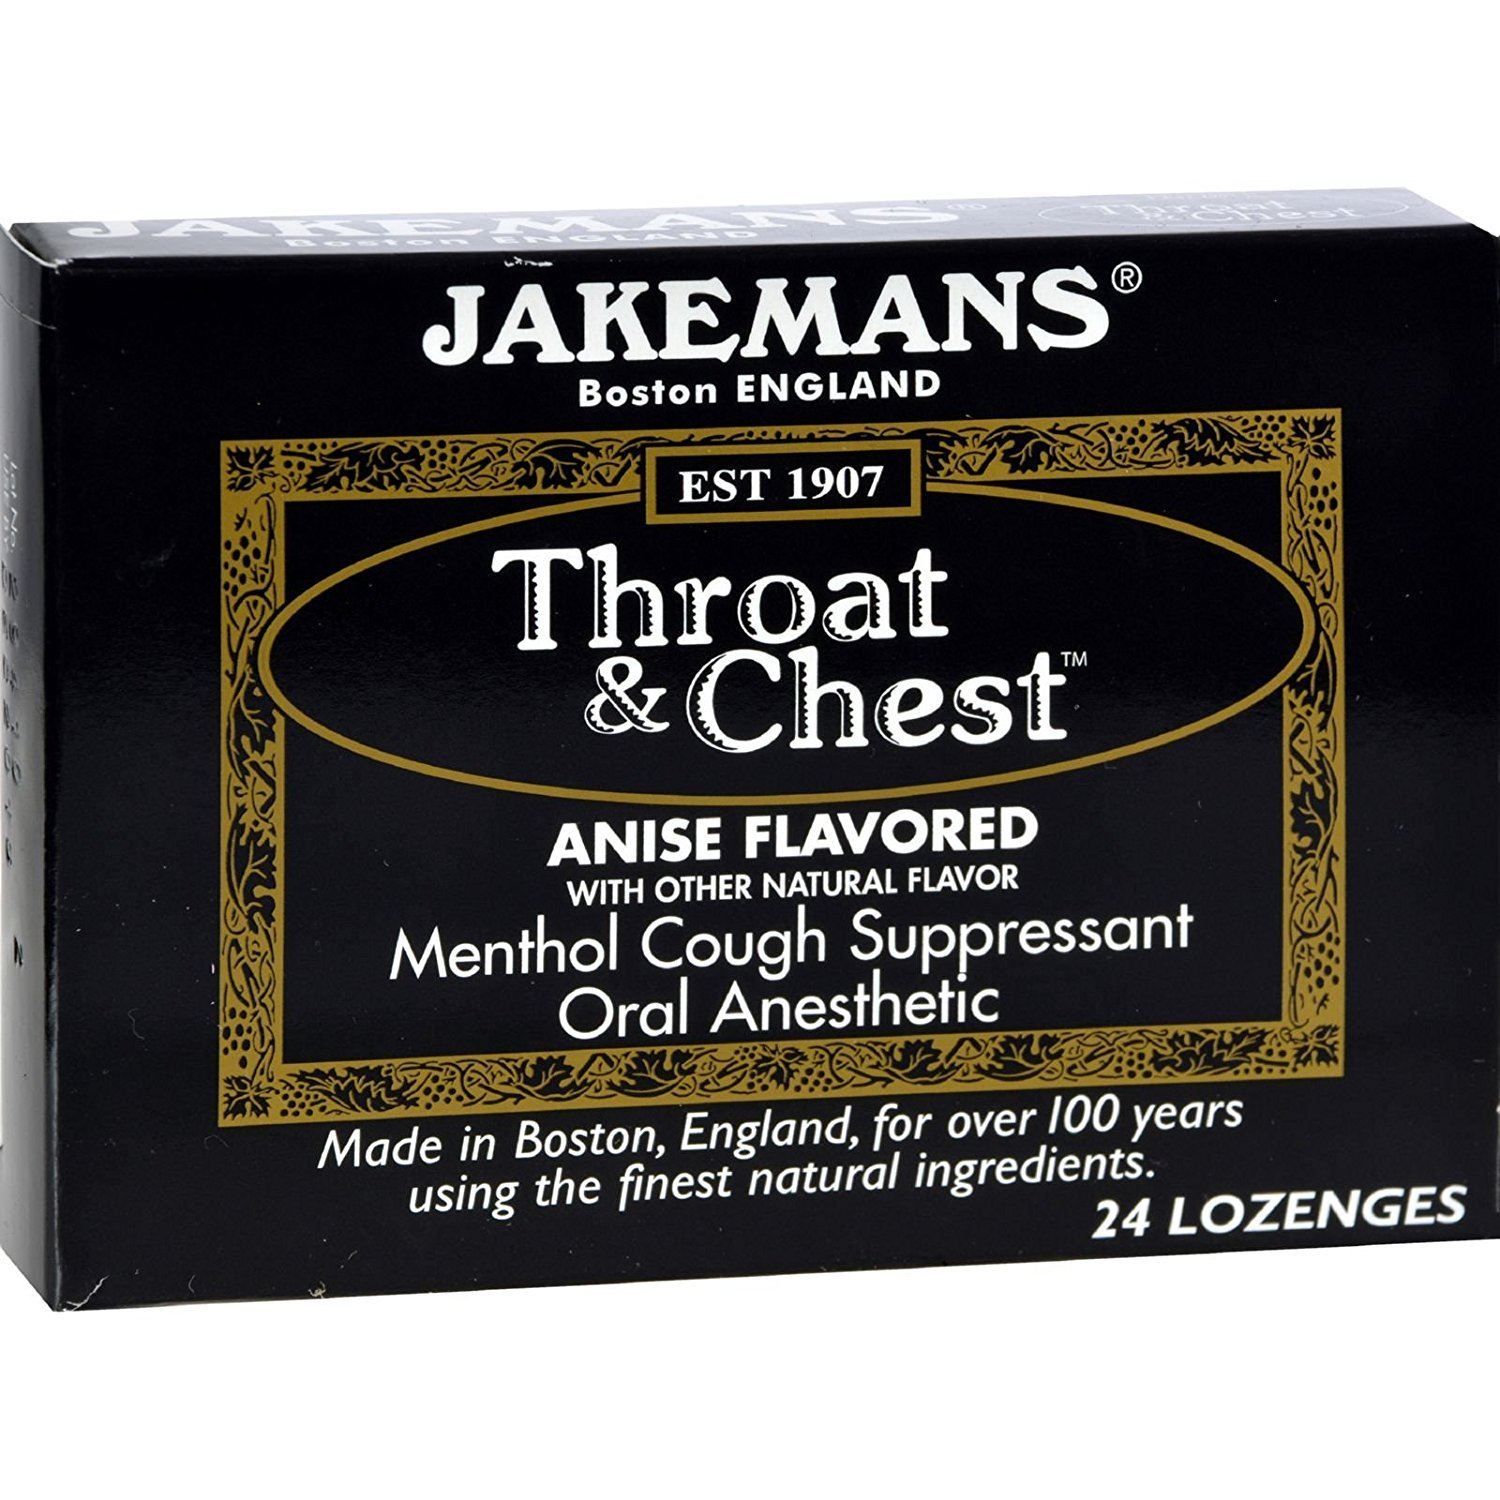 2Pack! Jakemans Throat and Chest Lozenges - Anise - Case of 24 - 24 Pack